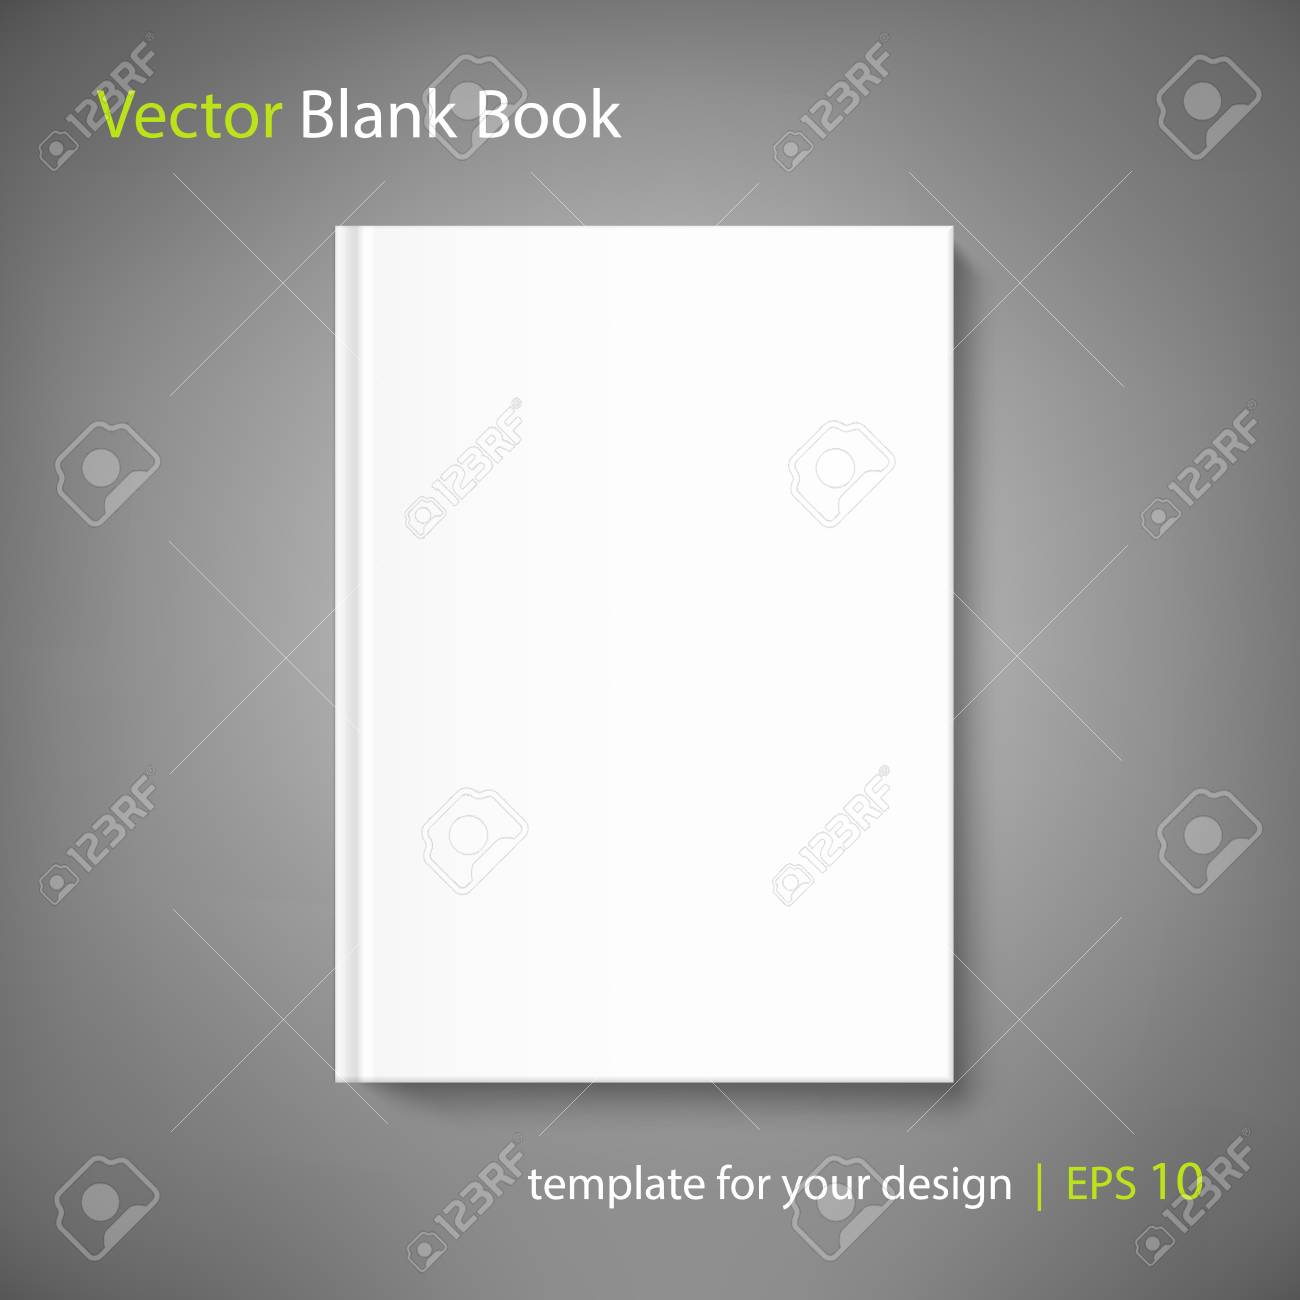 Mock up book cover on neutral grey background. Vector template for your design. - 95843005